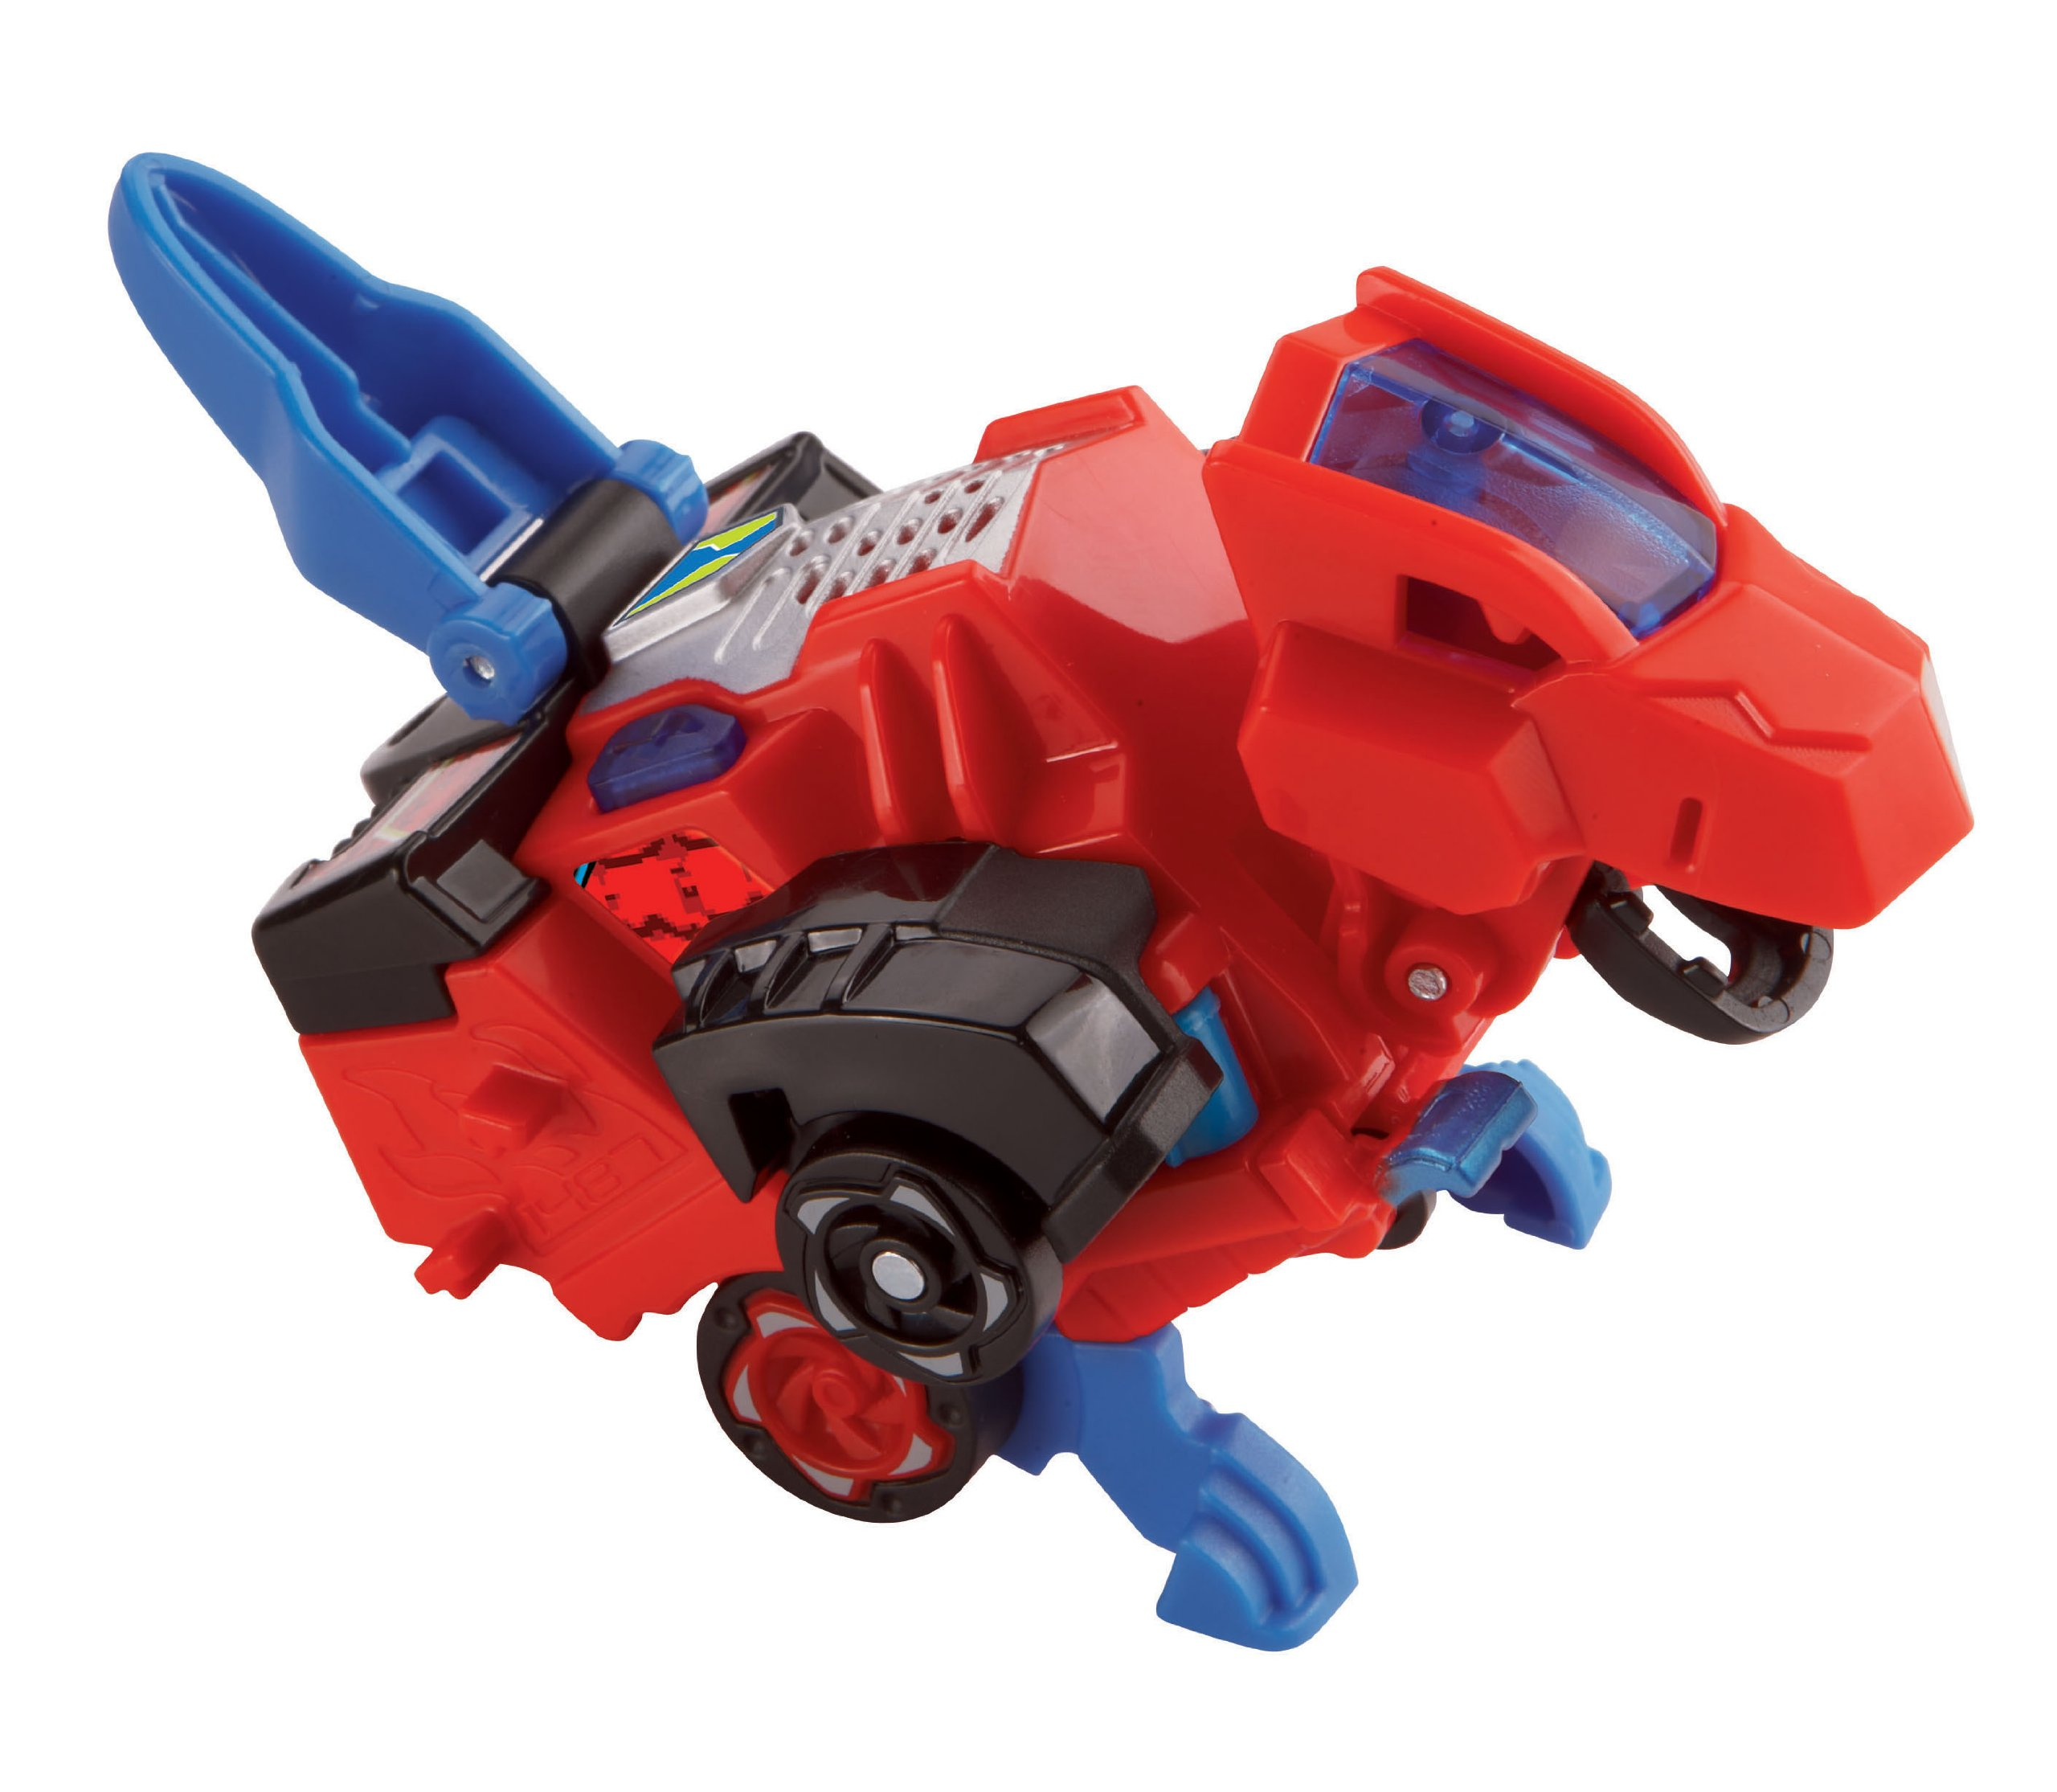 VTech Switch & Go Dinos Turbo T-Rex Launcher Playset by VTech